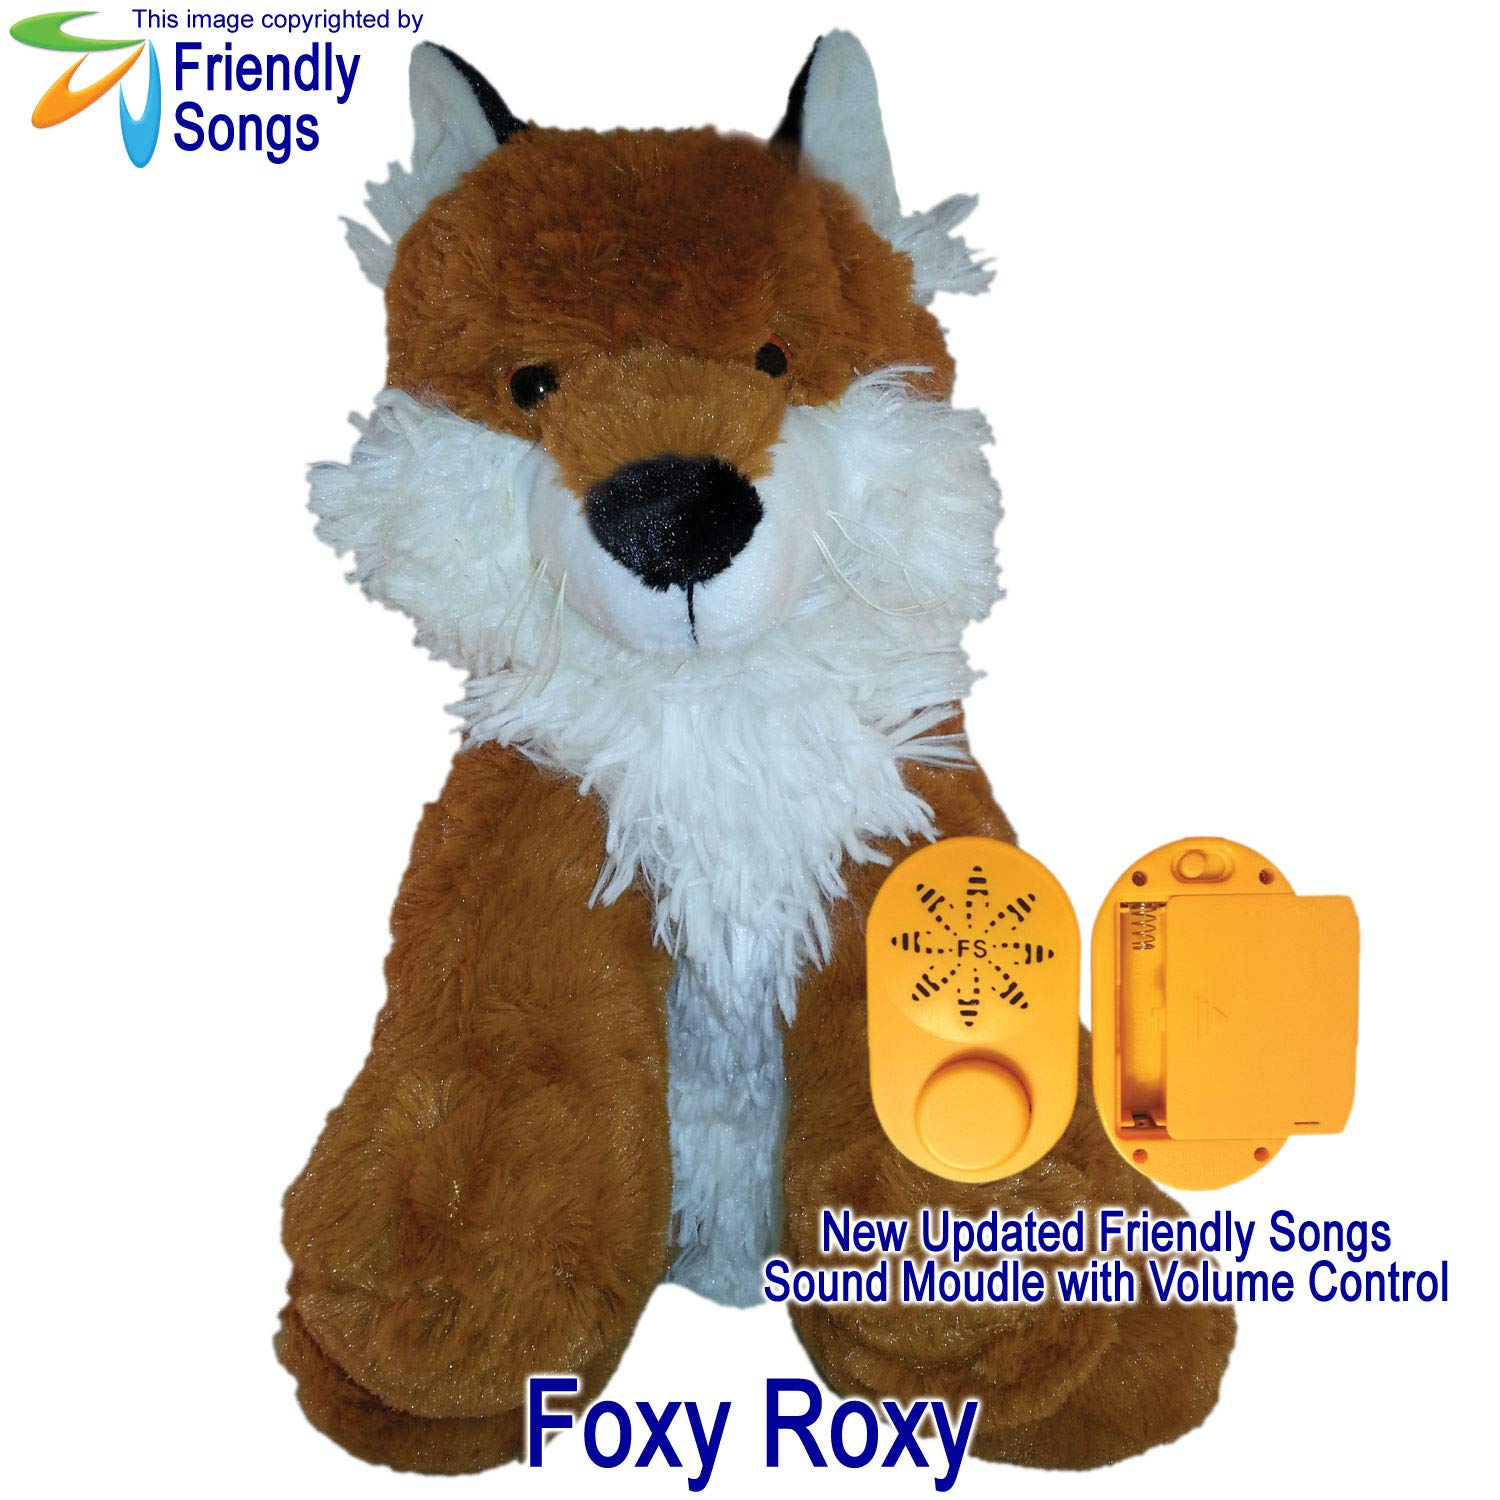 Friendly Songs What Does The Fox Say - 19'' Singing Stuffed Plush Animal Called Foxy Roxy